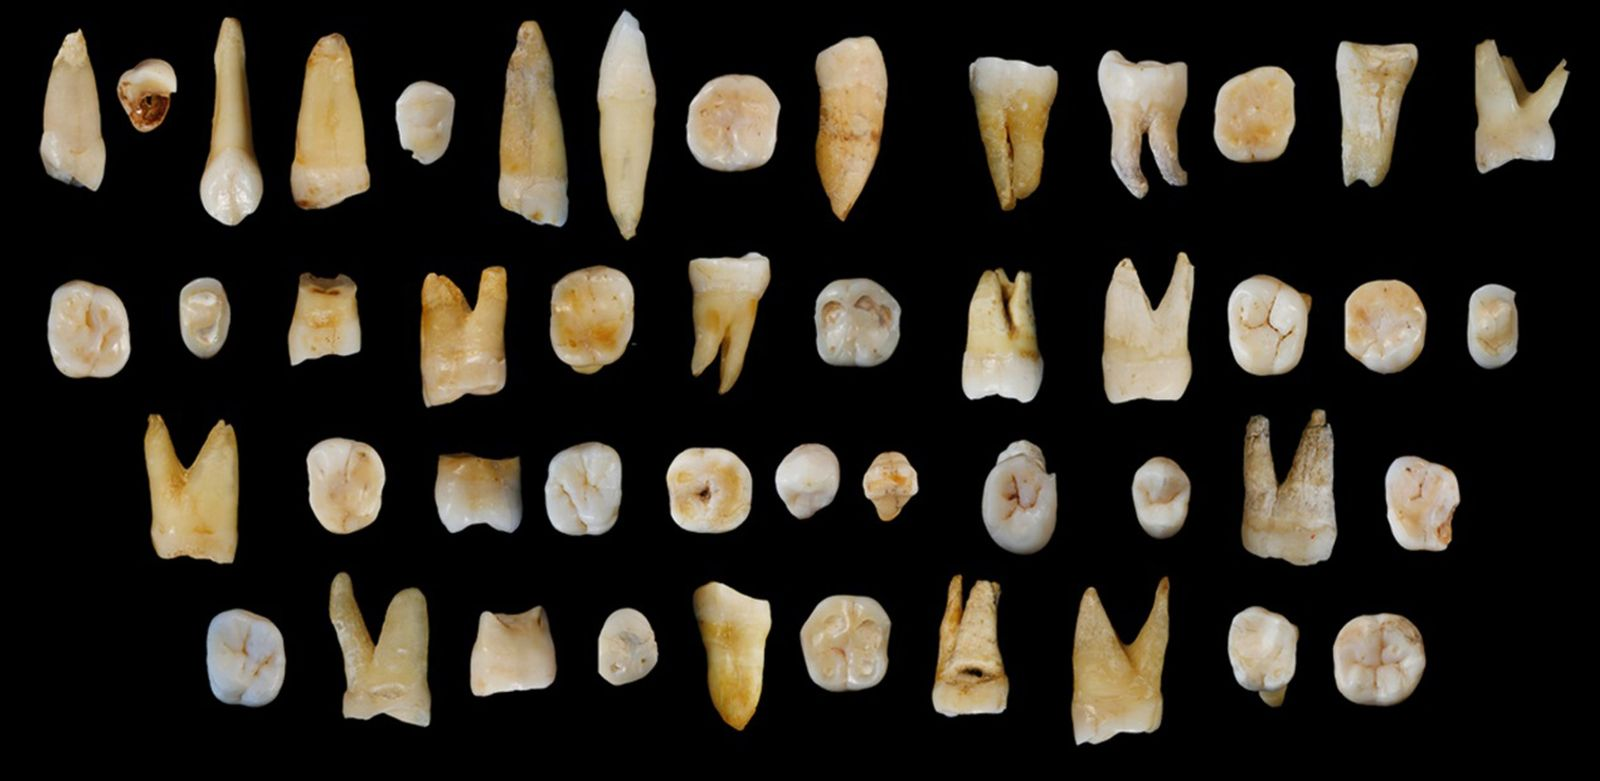 NATURE-SCIENCE-ARCHAEOLOGY